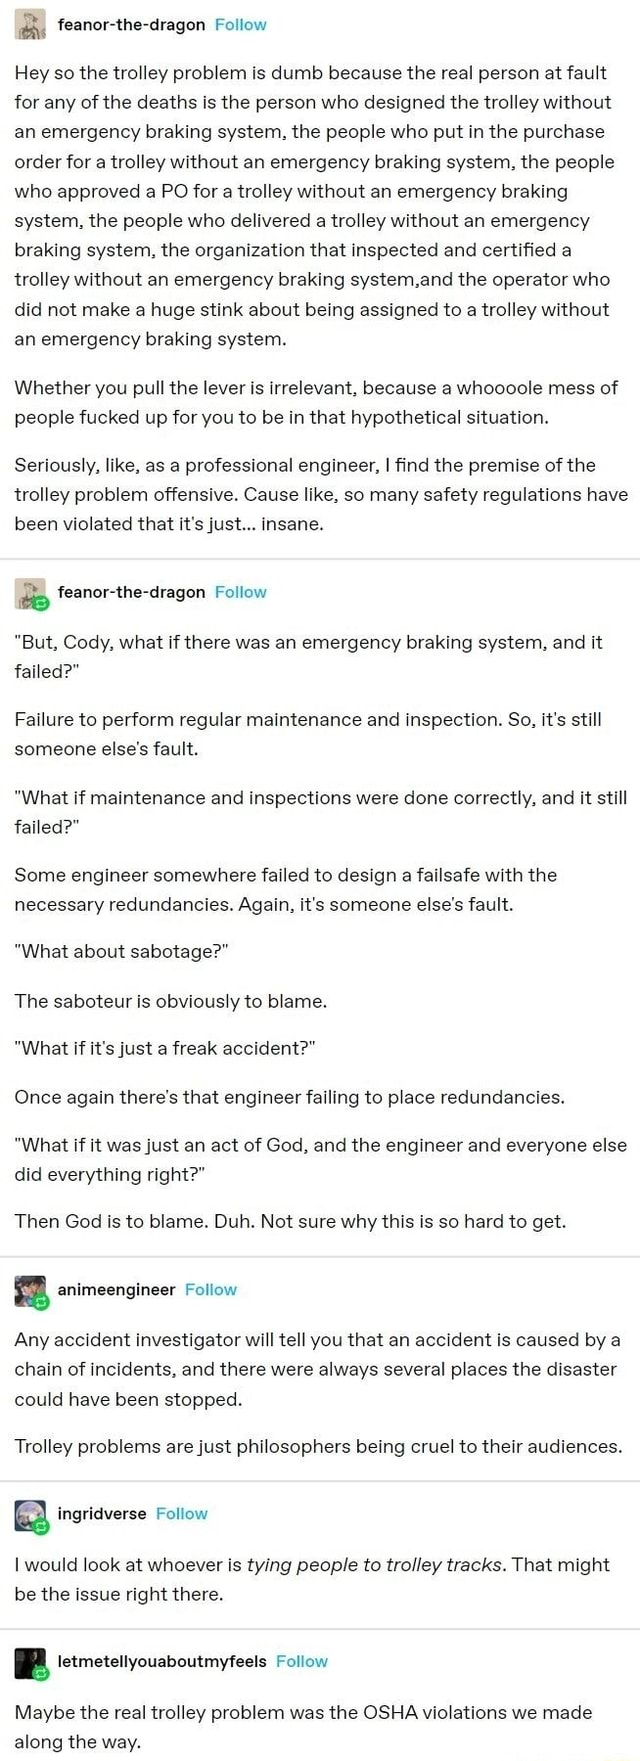 On feanor the dragon Follow Hey so the trolley problem is dumb because the real person at fault for any of the deaths is the person who designed the trolley without an emergency braking system, the people who put in the purchase order for a trolley without an emergency braking system, the people who approved a PO for a trolley without an emergency braking system, the people who delivered a trolley without an emergency braking system, the organization that inspected and certified a trolley without an emergency braking system.and the operator who did not make a huge stink about being assigned to a trolley without an emergency braking system. Whether you pull the lever is irrelevant, because a whoooole mess of people fucked up for you to be in that hypothetical situation. Seriously, like, as